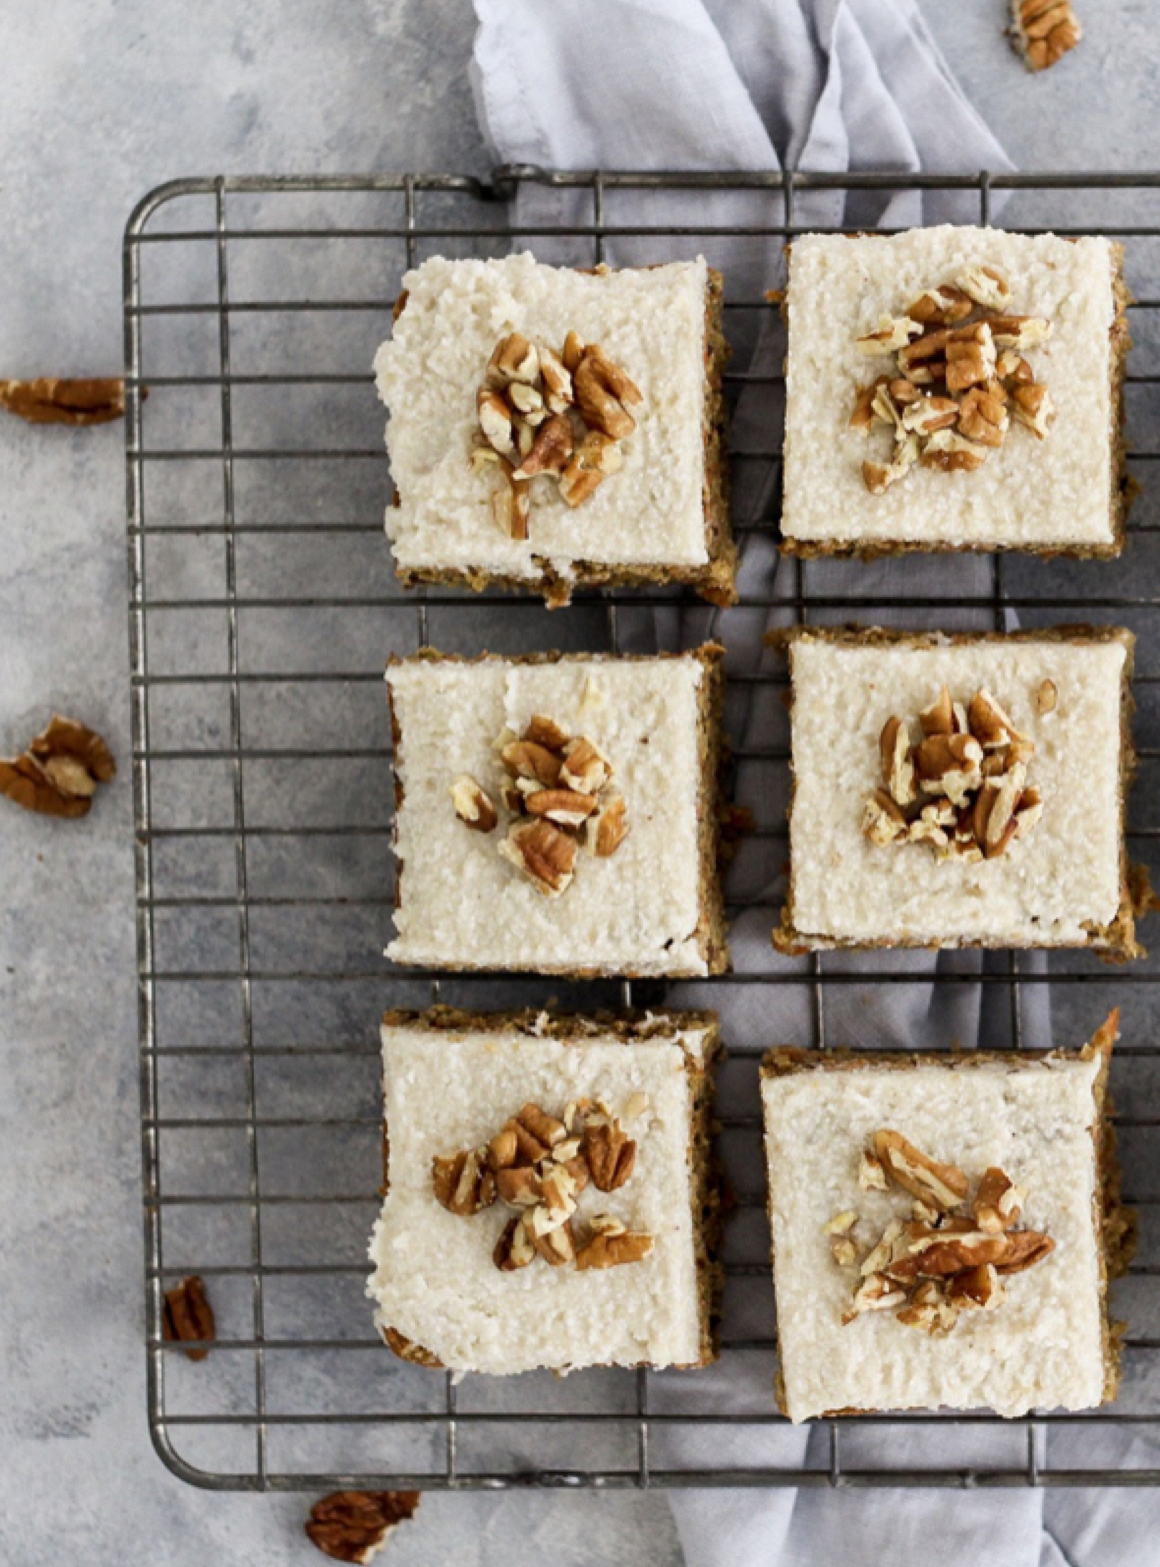 carrot cake bars - These carrot cake bars look so delicious and such a great twist on the classic carrot cake. All the classic spices, chunky bits of fresh carrot and topped with a cashew based frosting - amazing!Here's the recipe